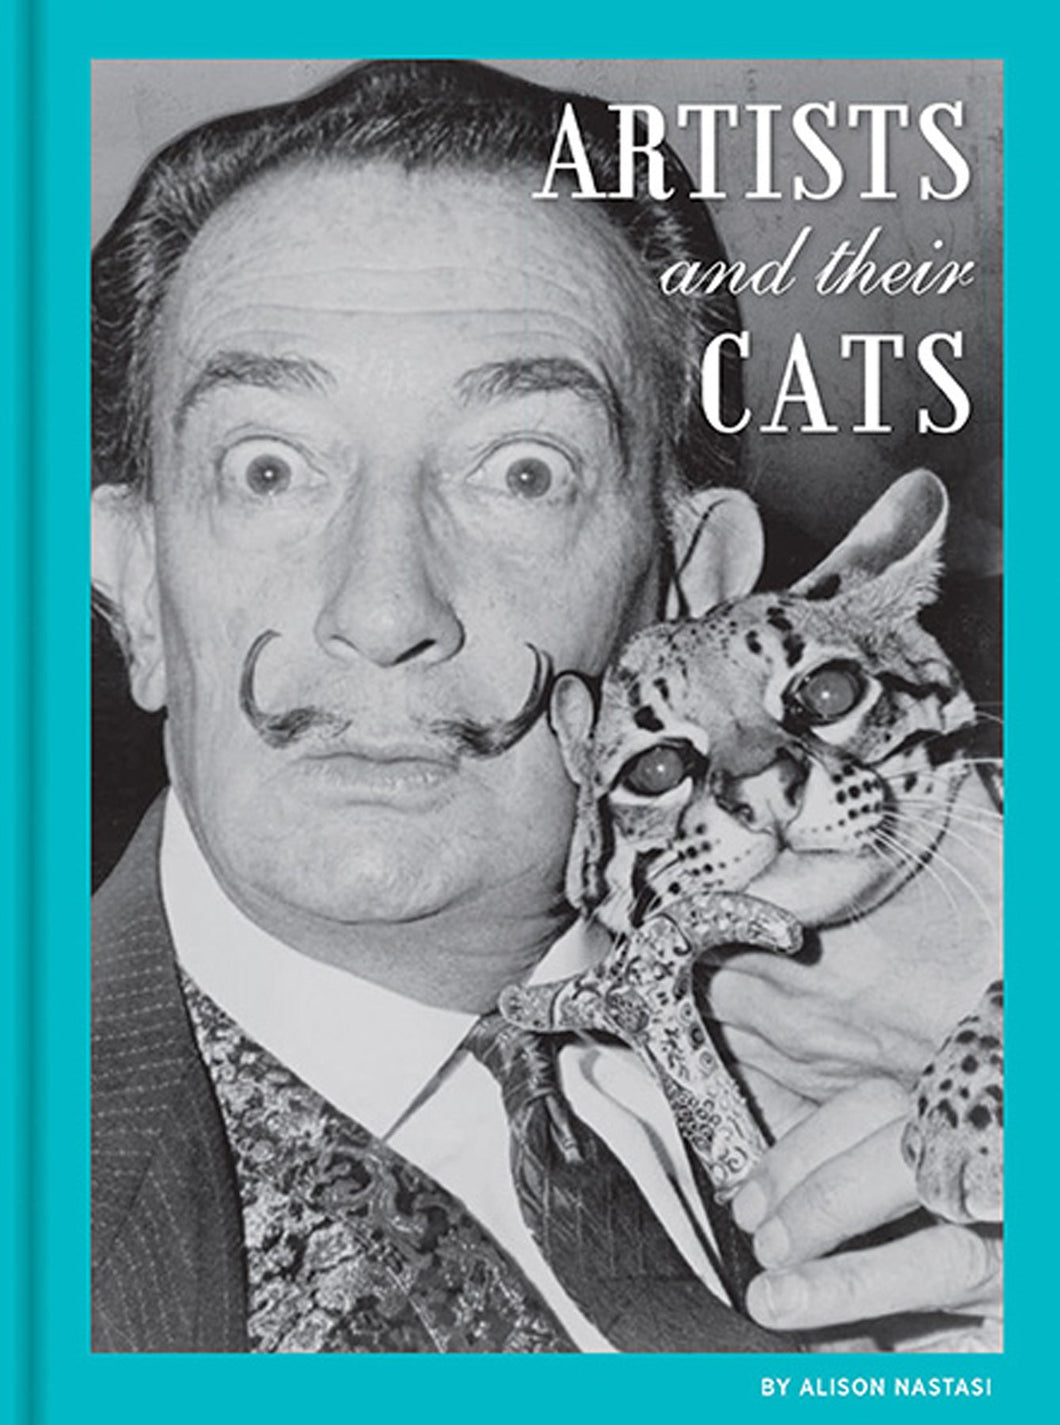 Artists and Their Cats, by Alison Nastasi